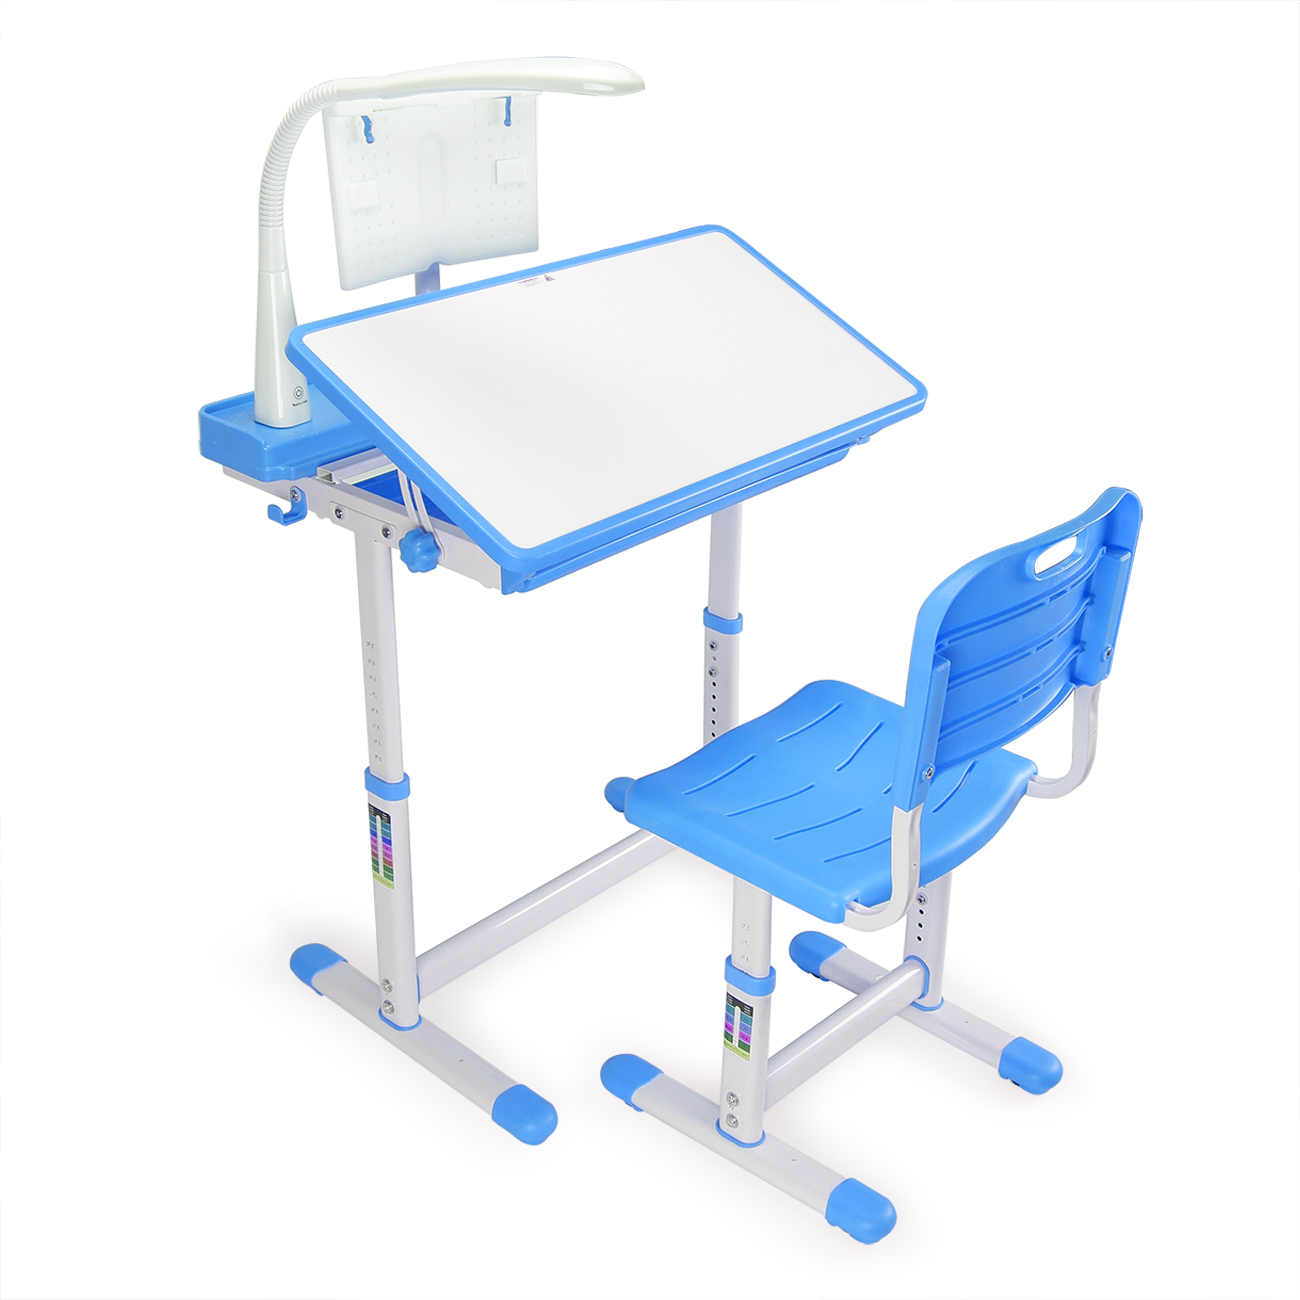 Kids Chair Desk Details About Adjustable Blue Children S Study Desk Table Chair Set Child Kids With Led Lamp